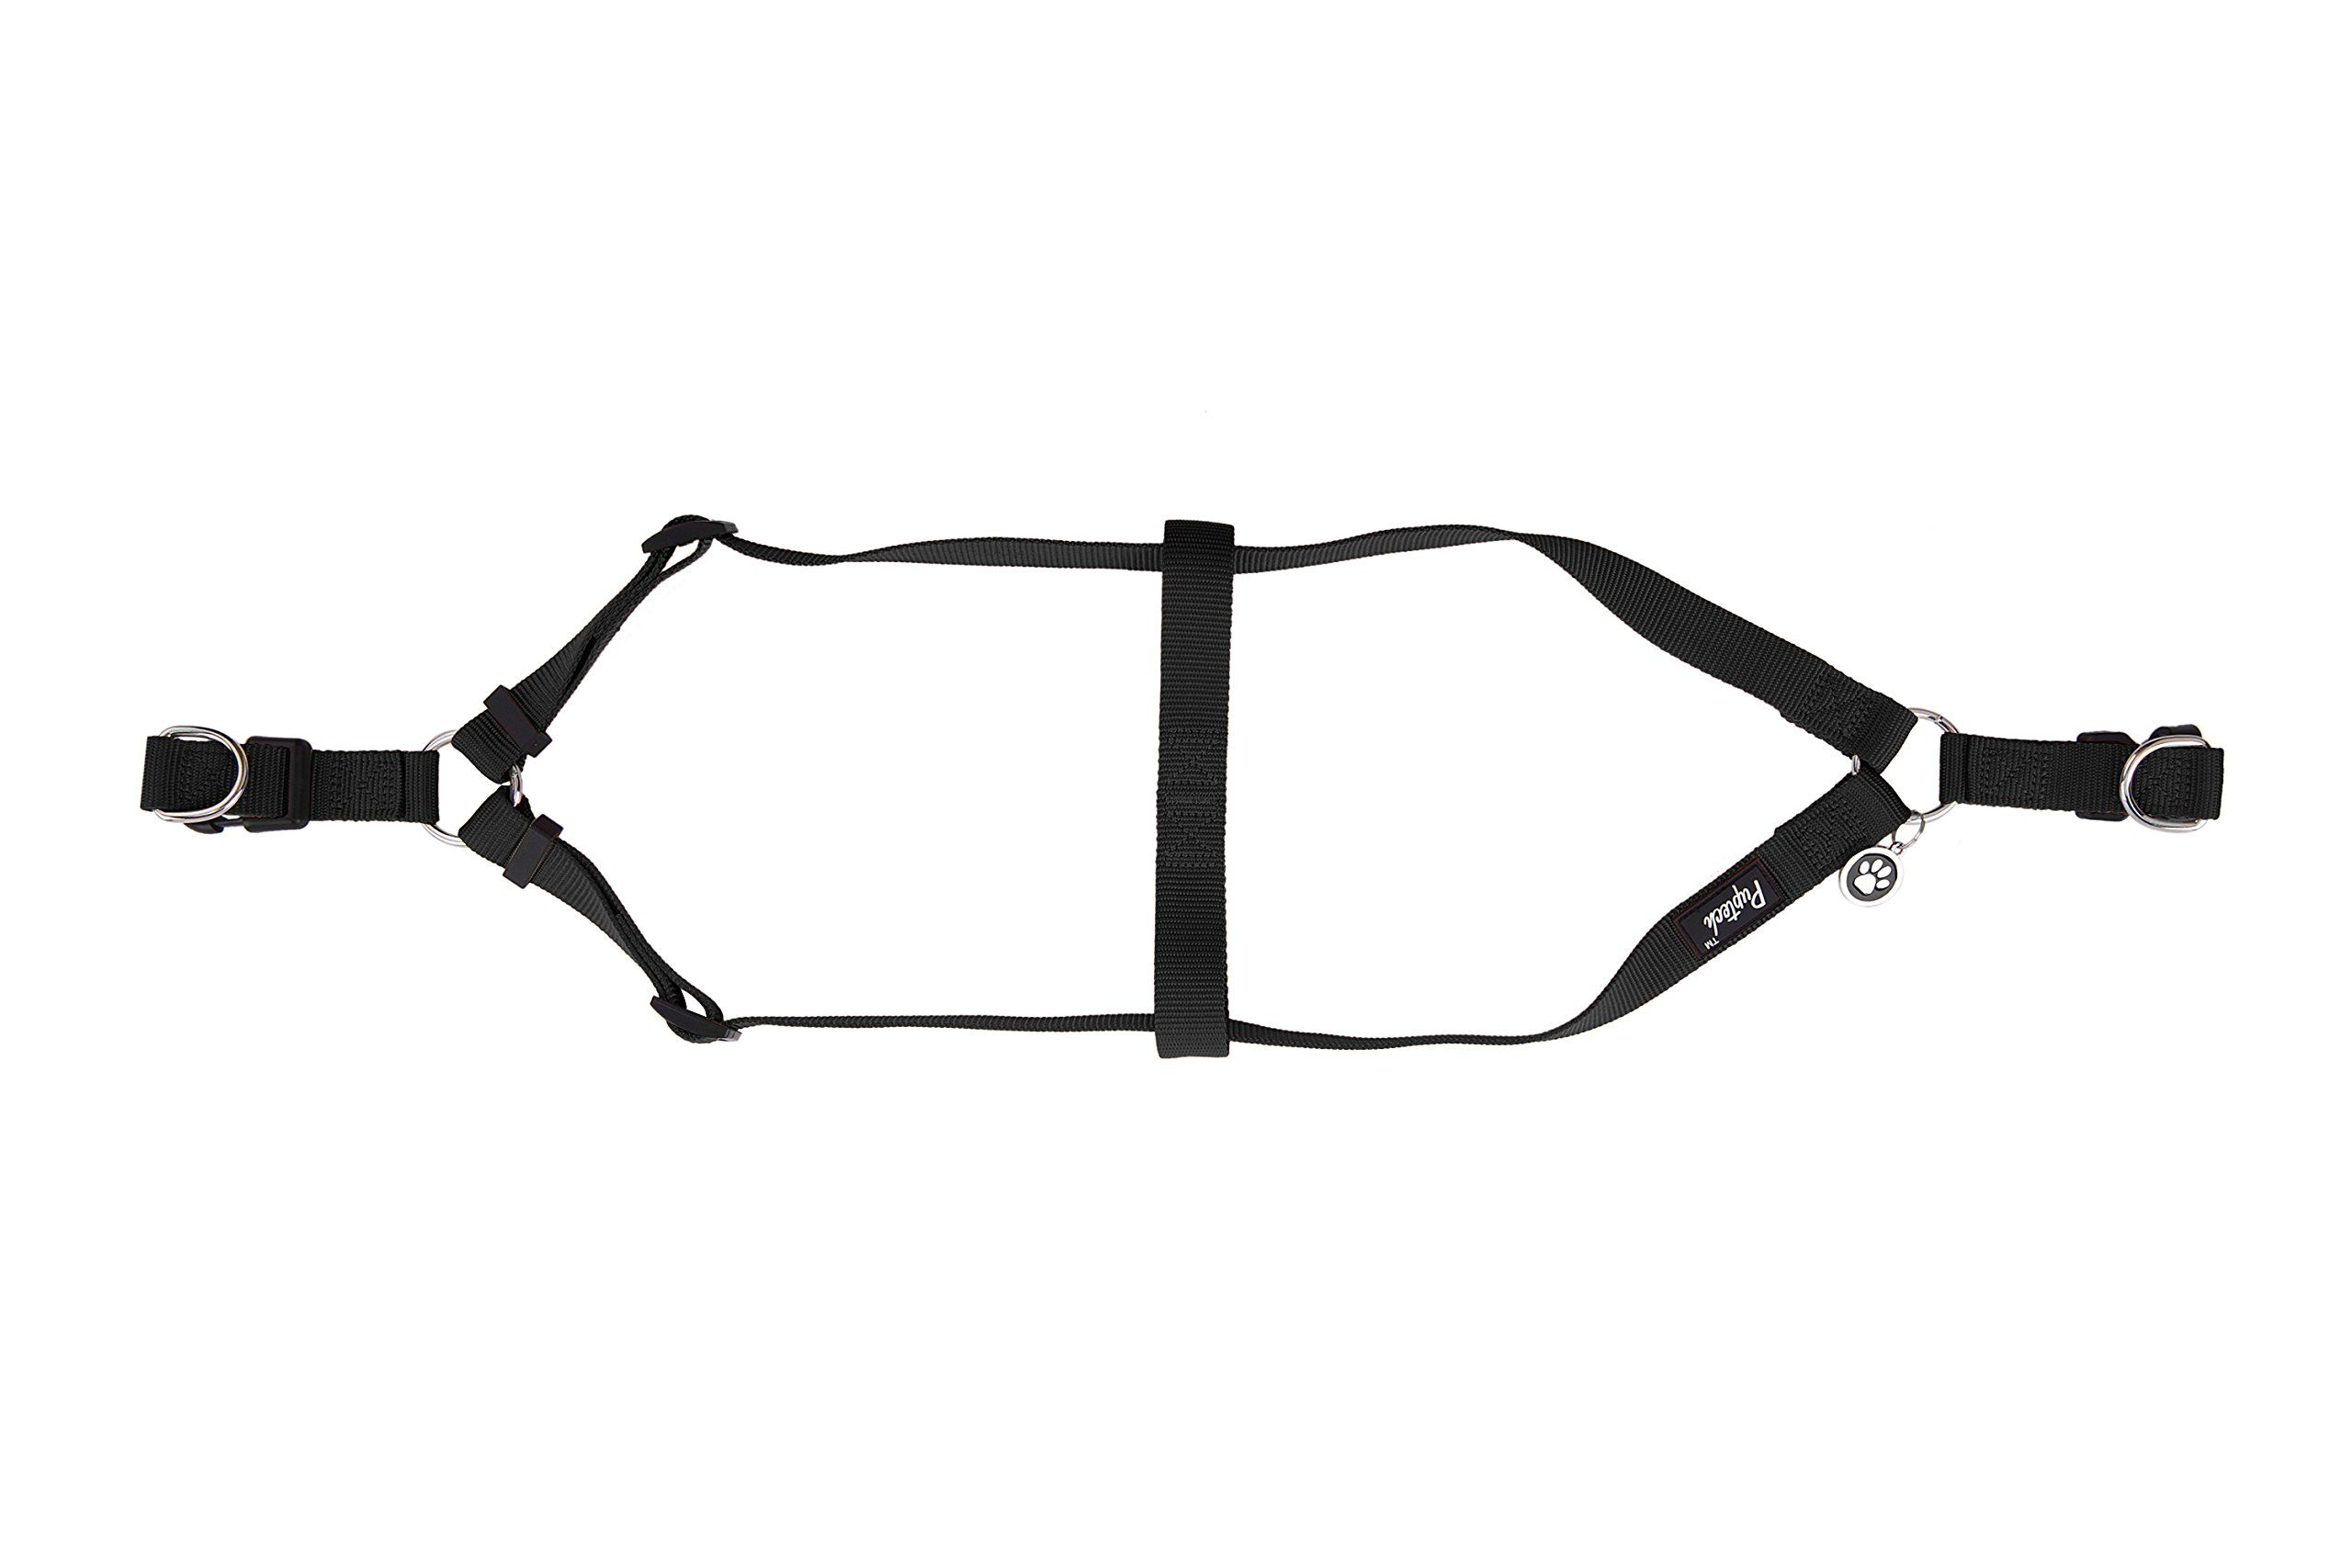 No Pull Dog Harness Adjustable Basic Nylon Step In Puppy